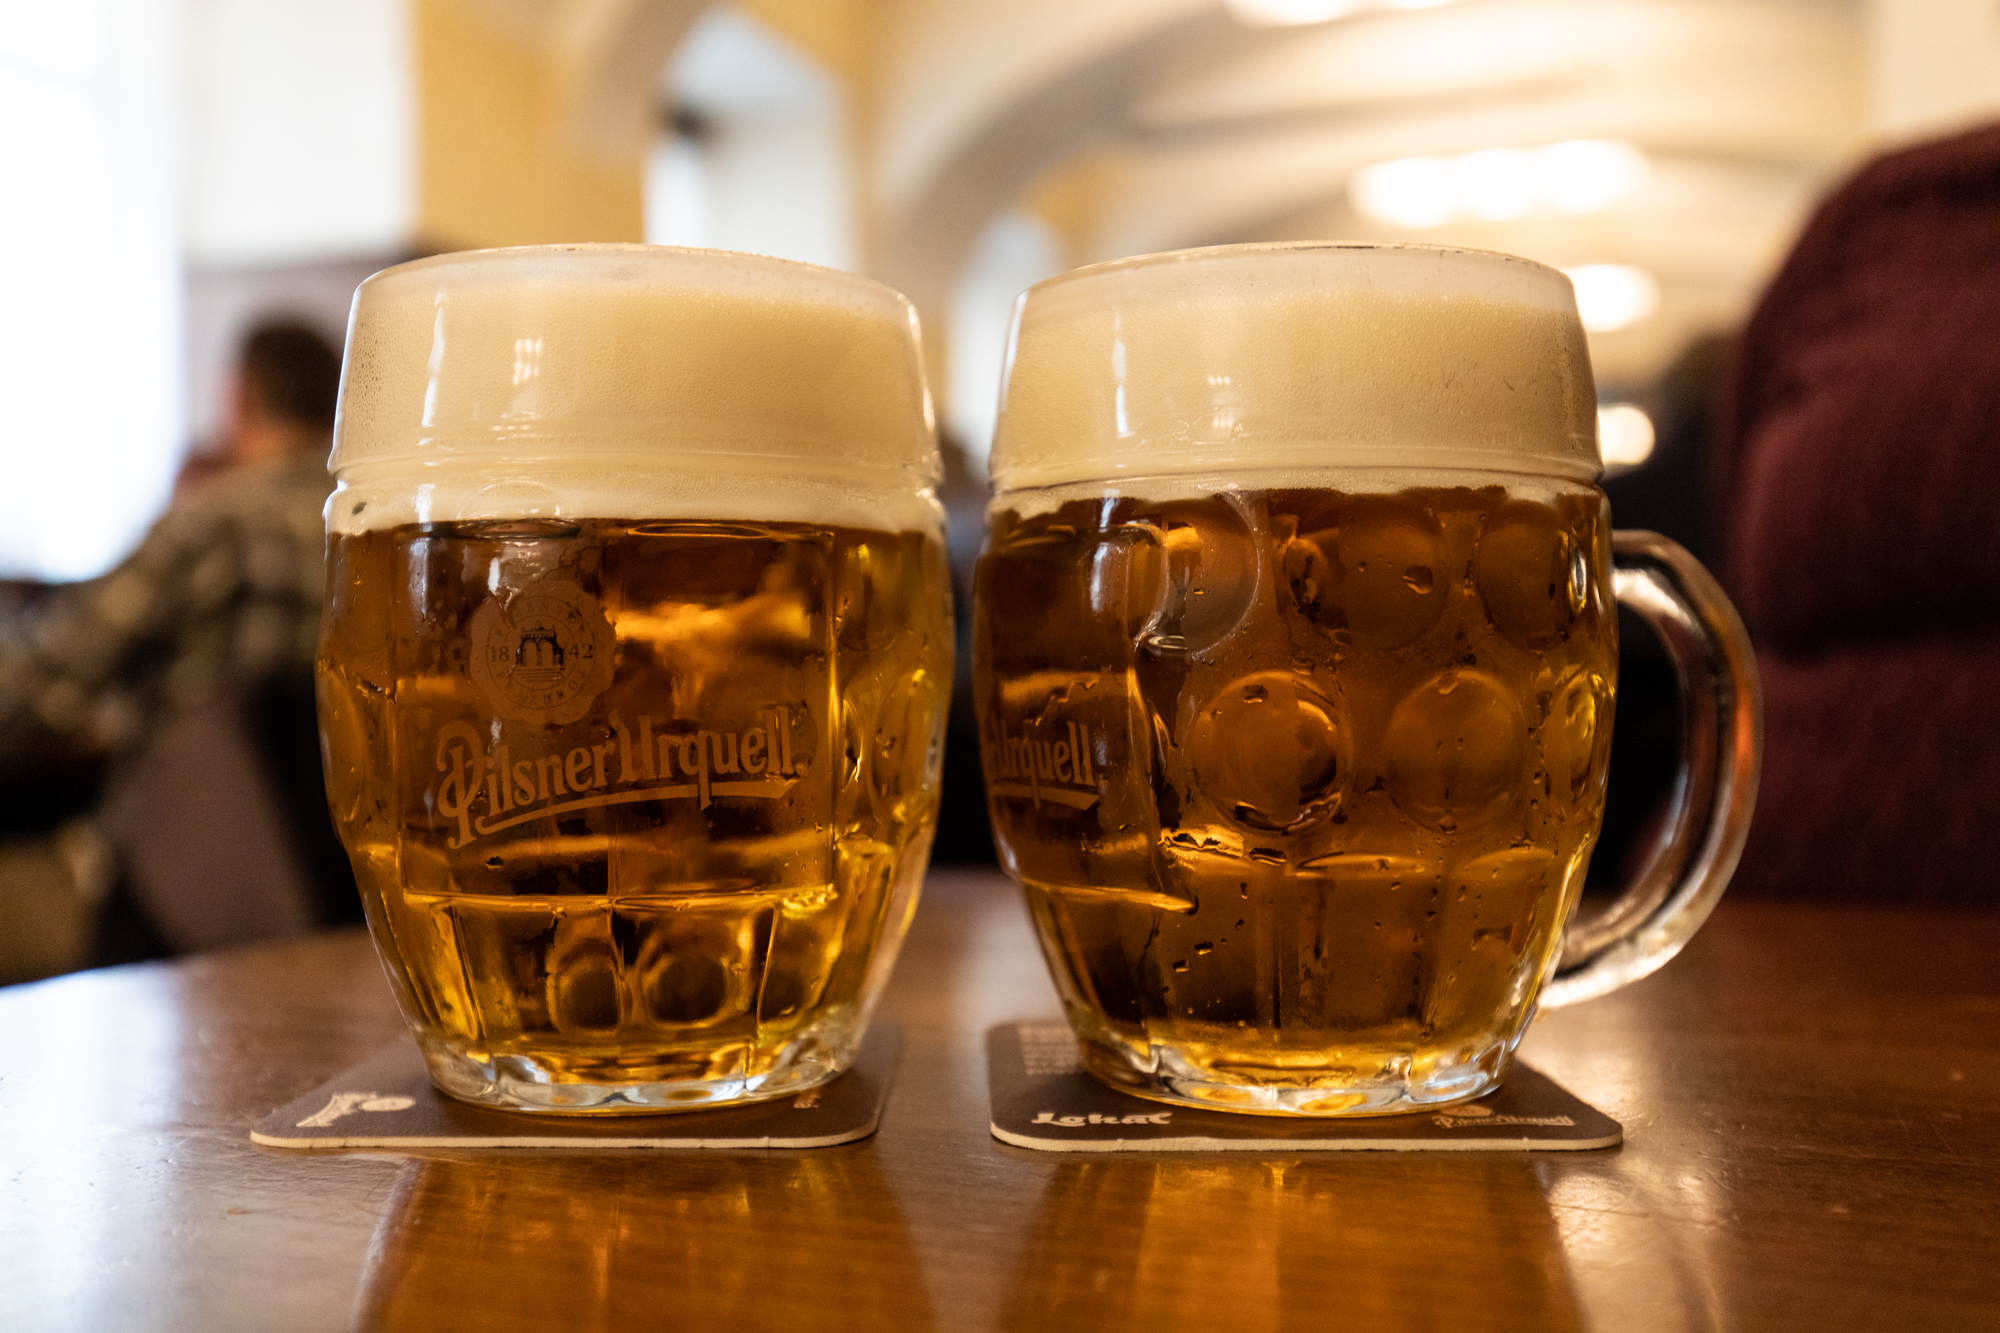 2 glasses of Pilsner Urquell Tankova beer at Lokál Dlouhá in Prague